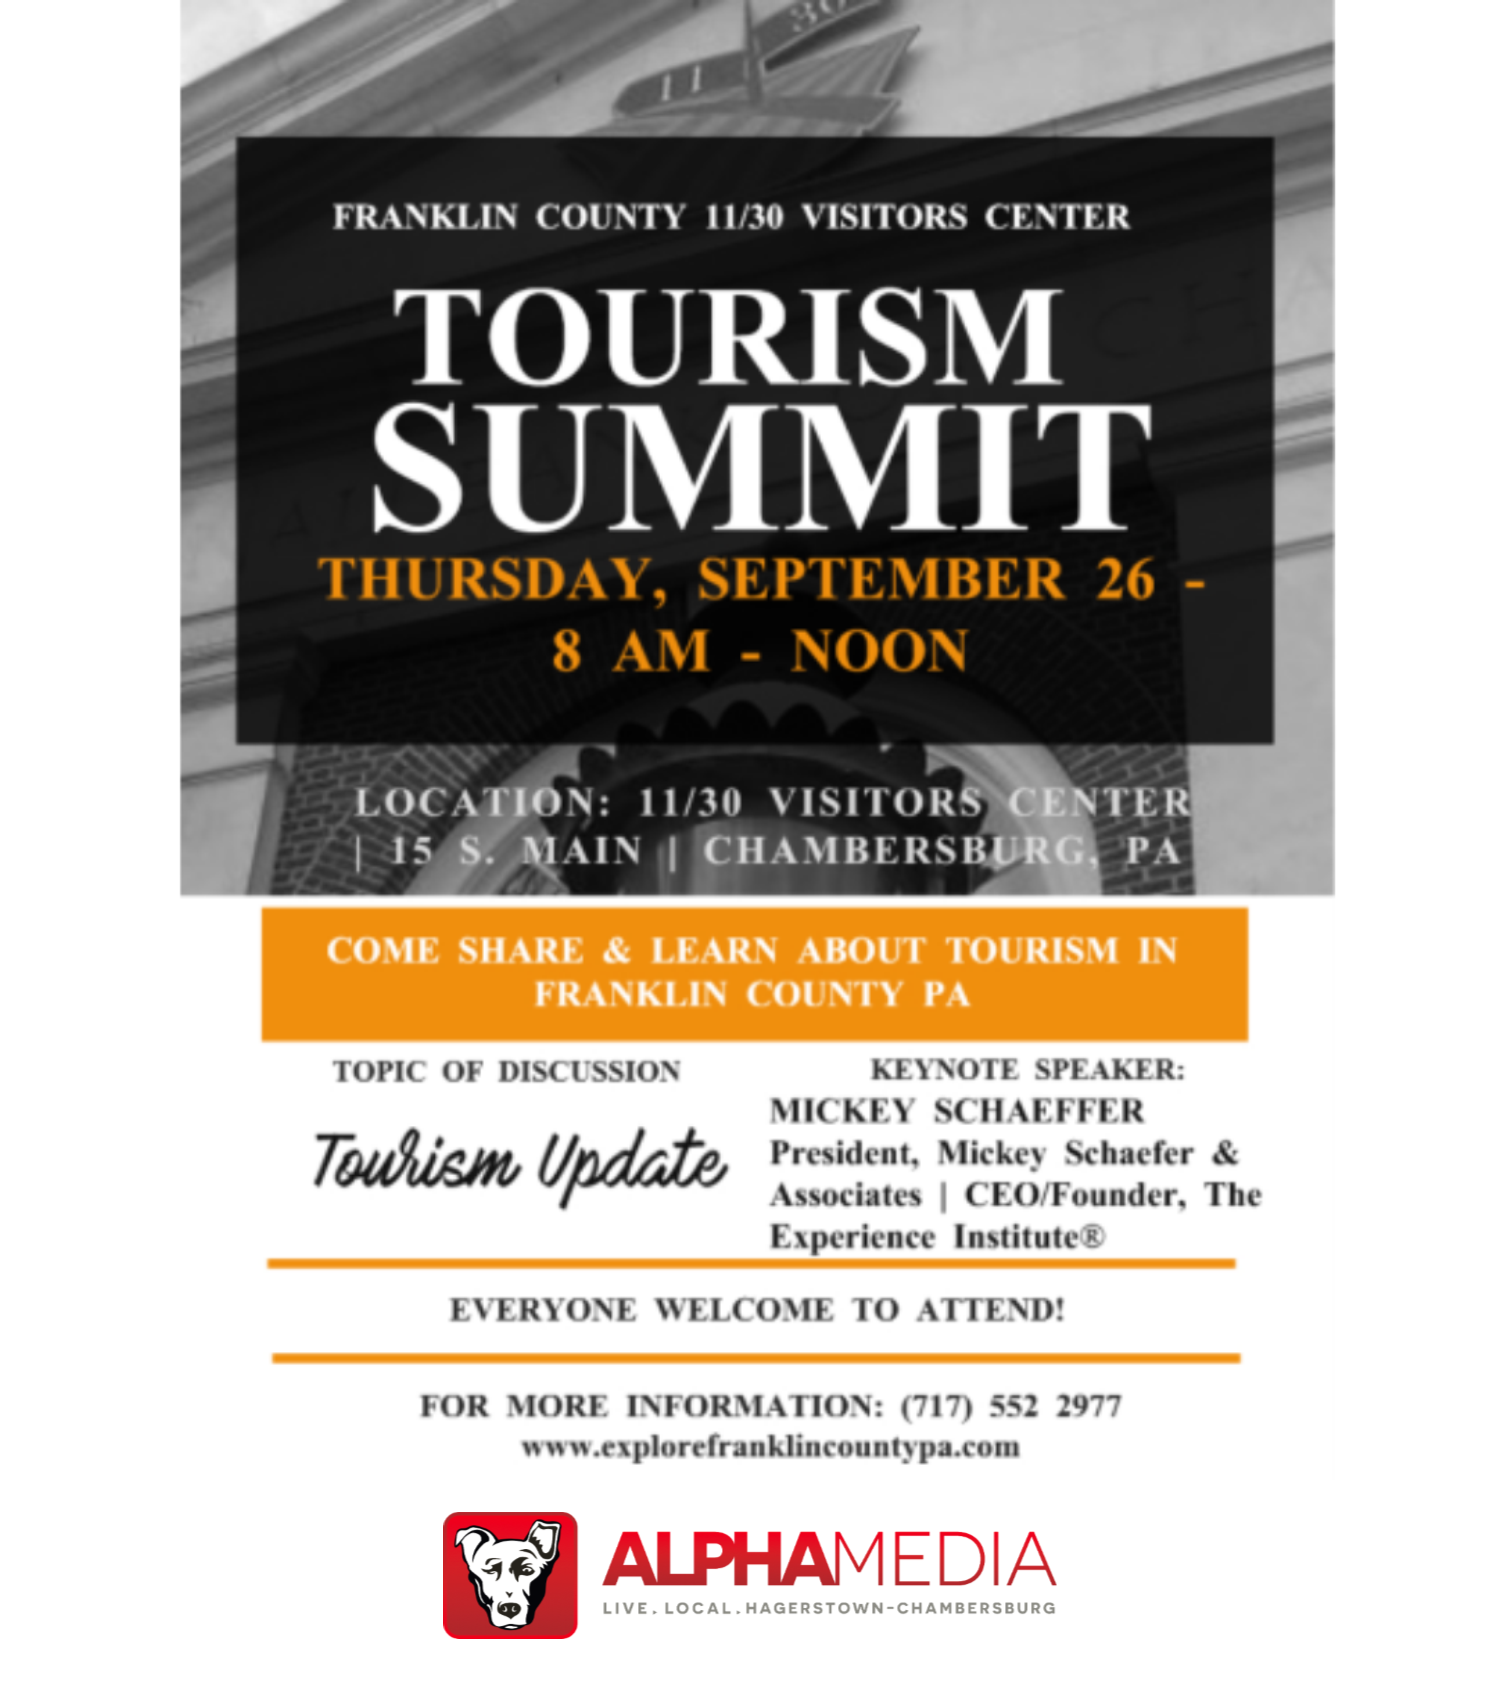 Franklin County 11/30 Visitors Center 2019 Tourism Summit